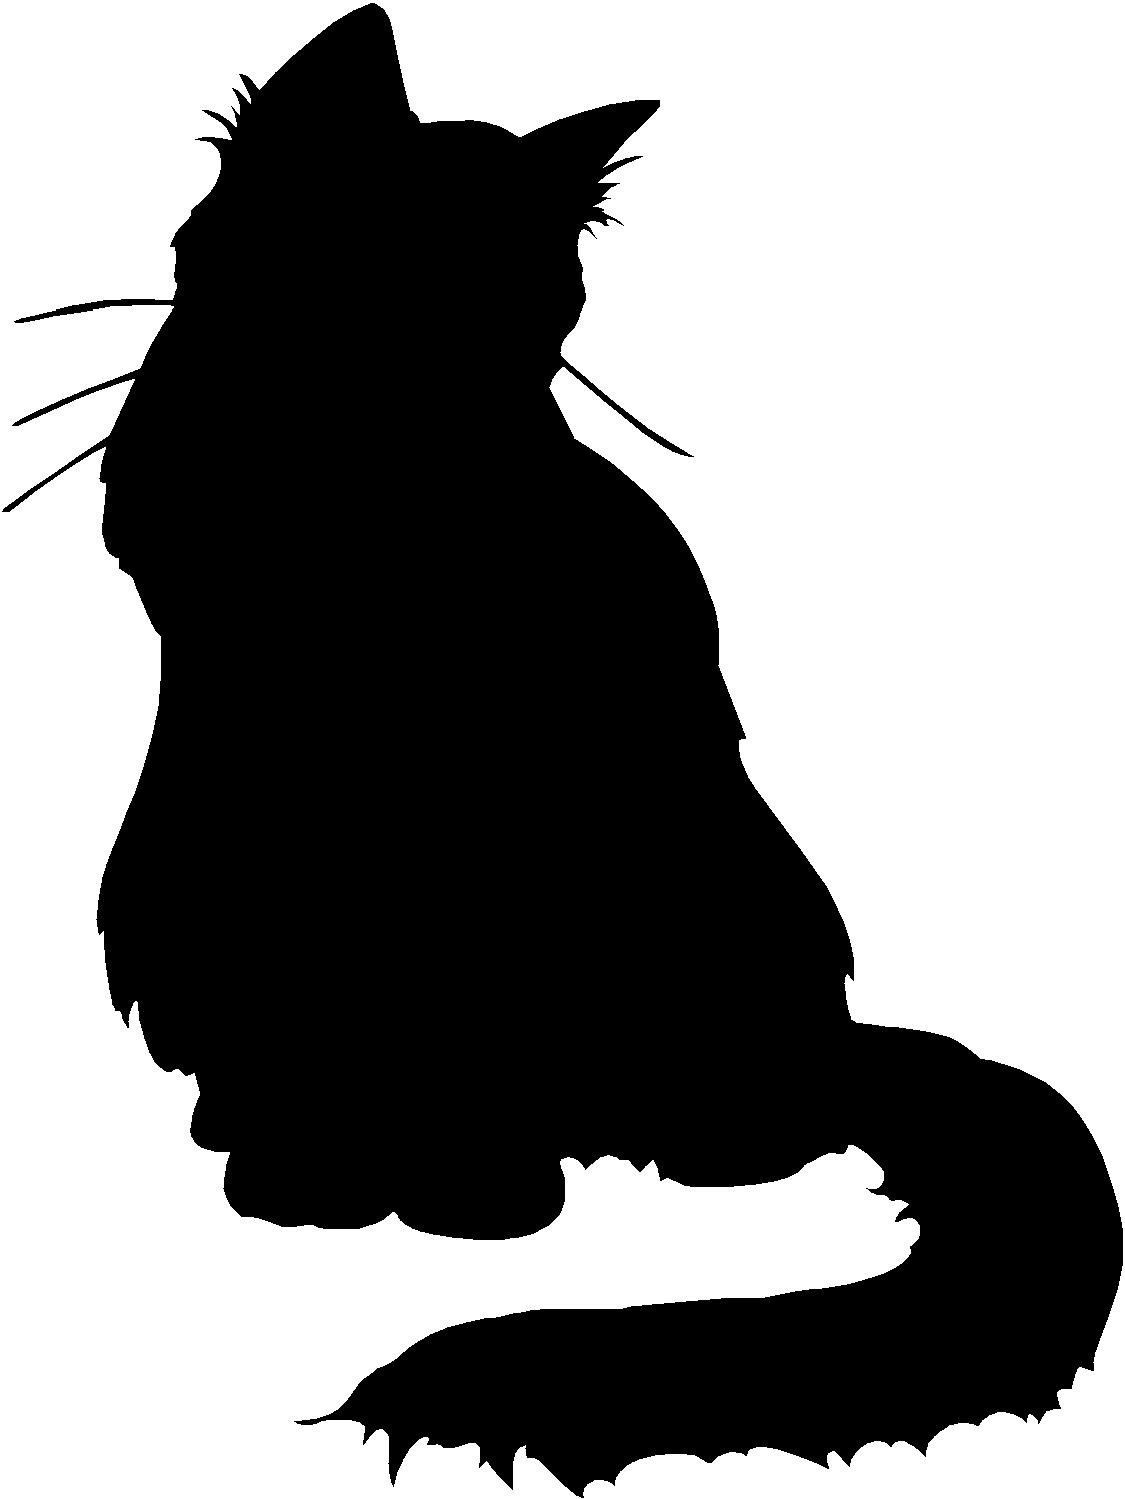 Fluffy Cat Kitten 3 75 X 5 Choose Color Vinyl Decal Sticker 2863 Fluffy Cat Cat Silhouette Cats And Kittens